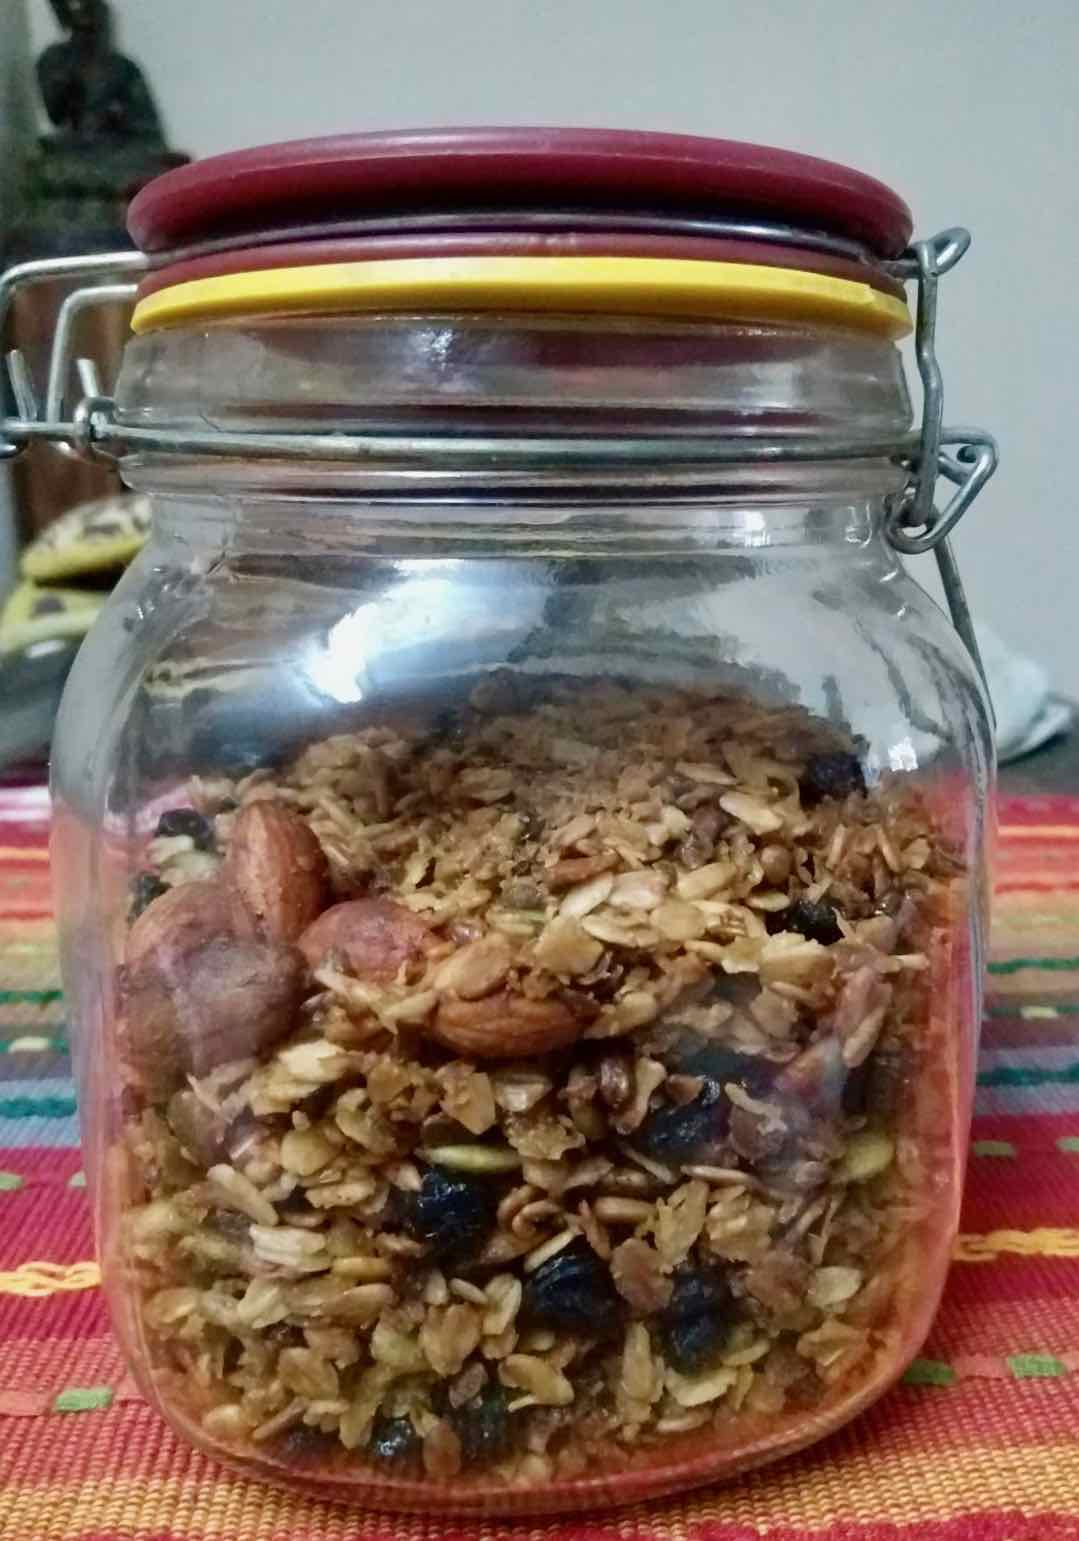 Finished Granola mix